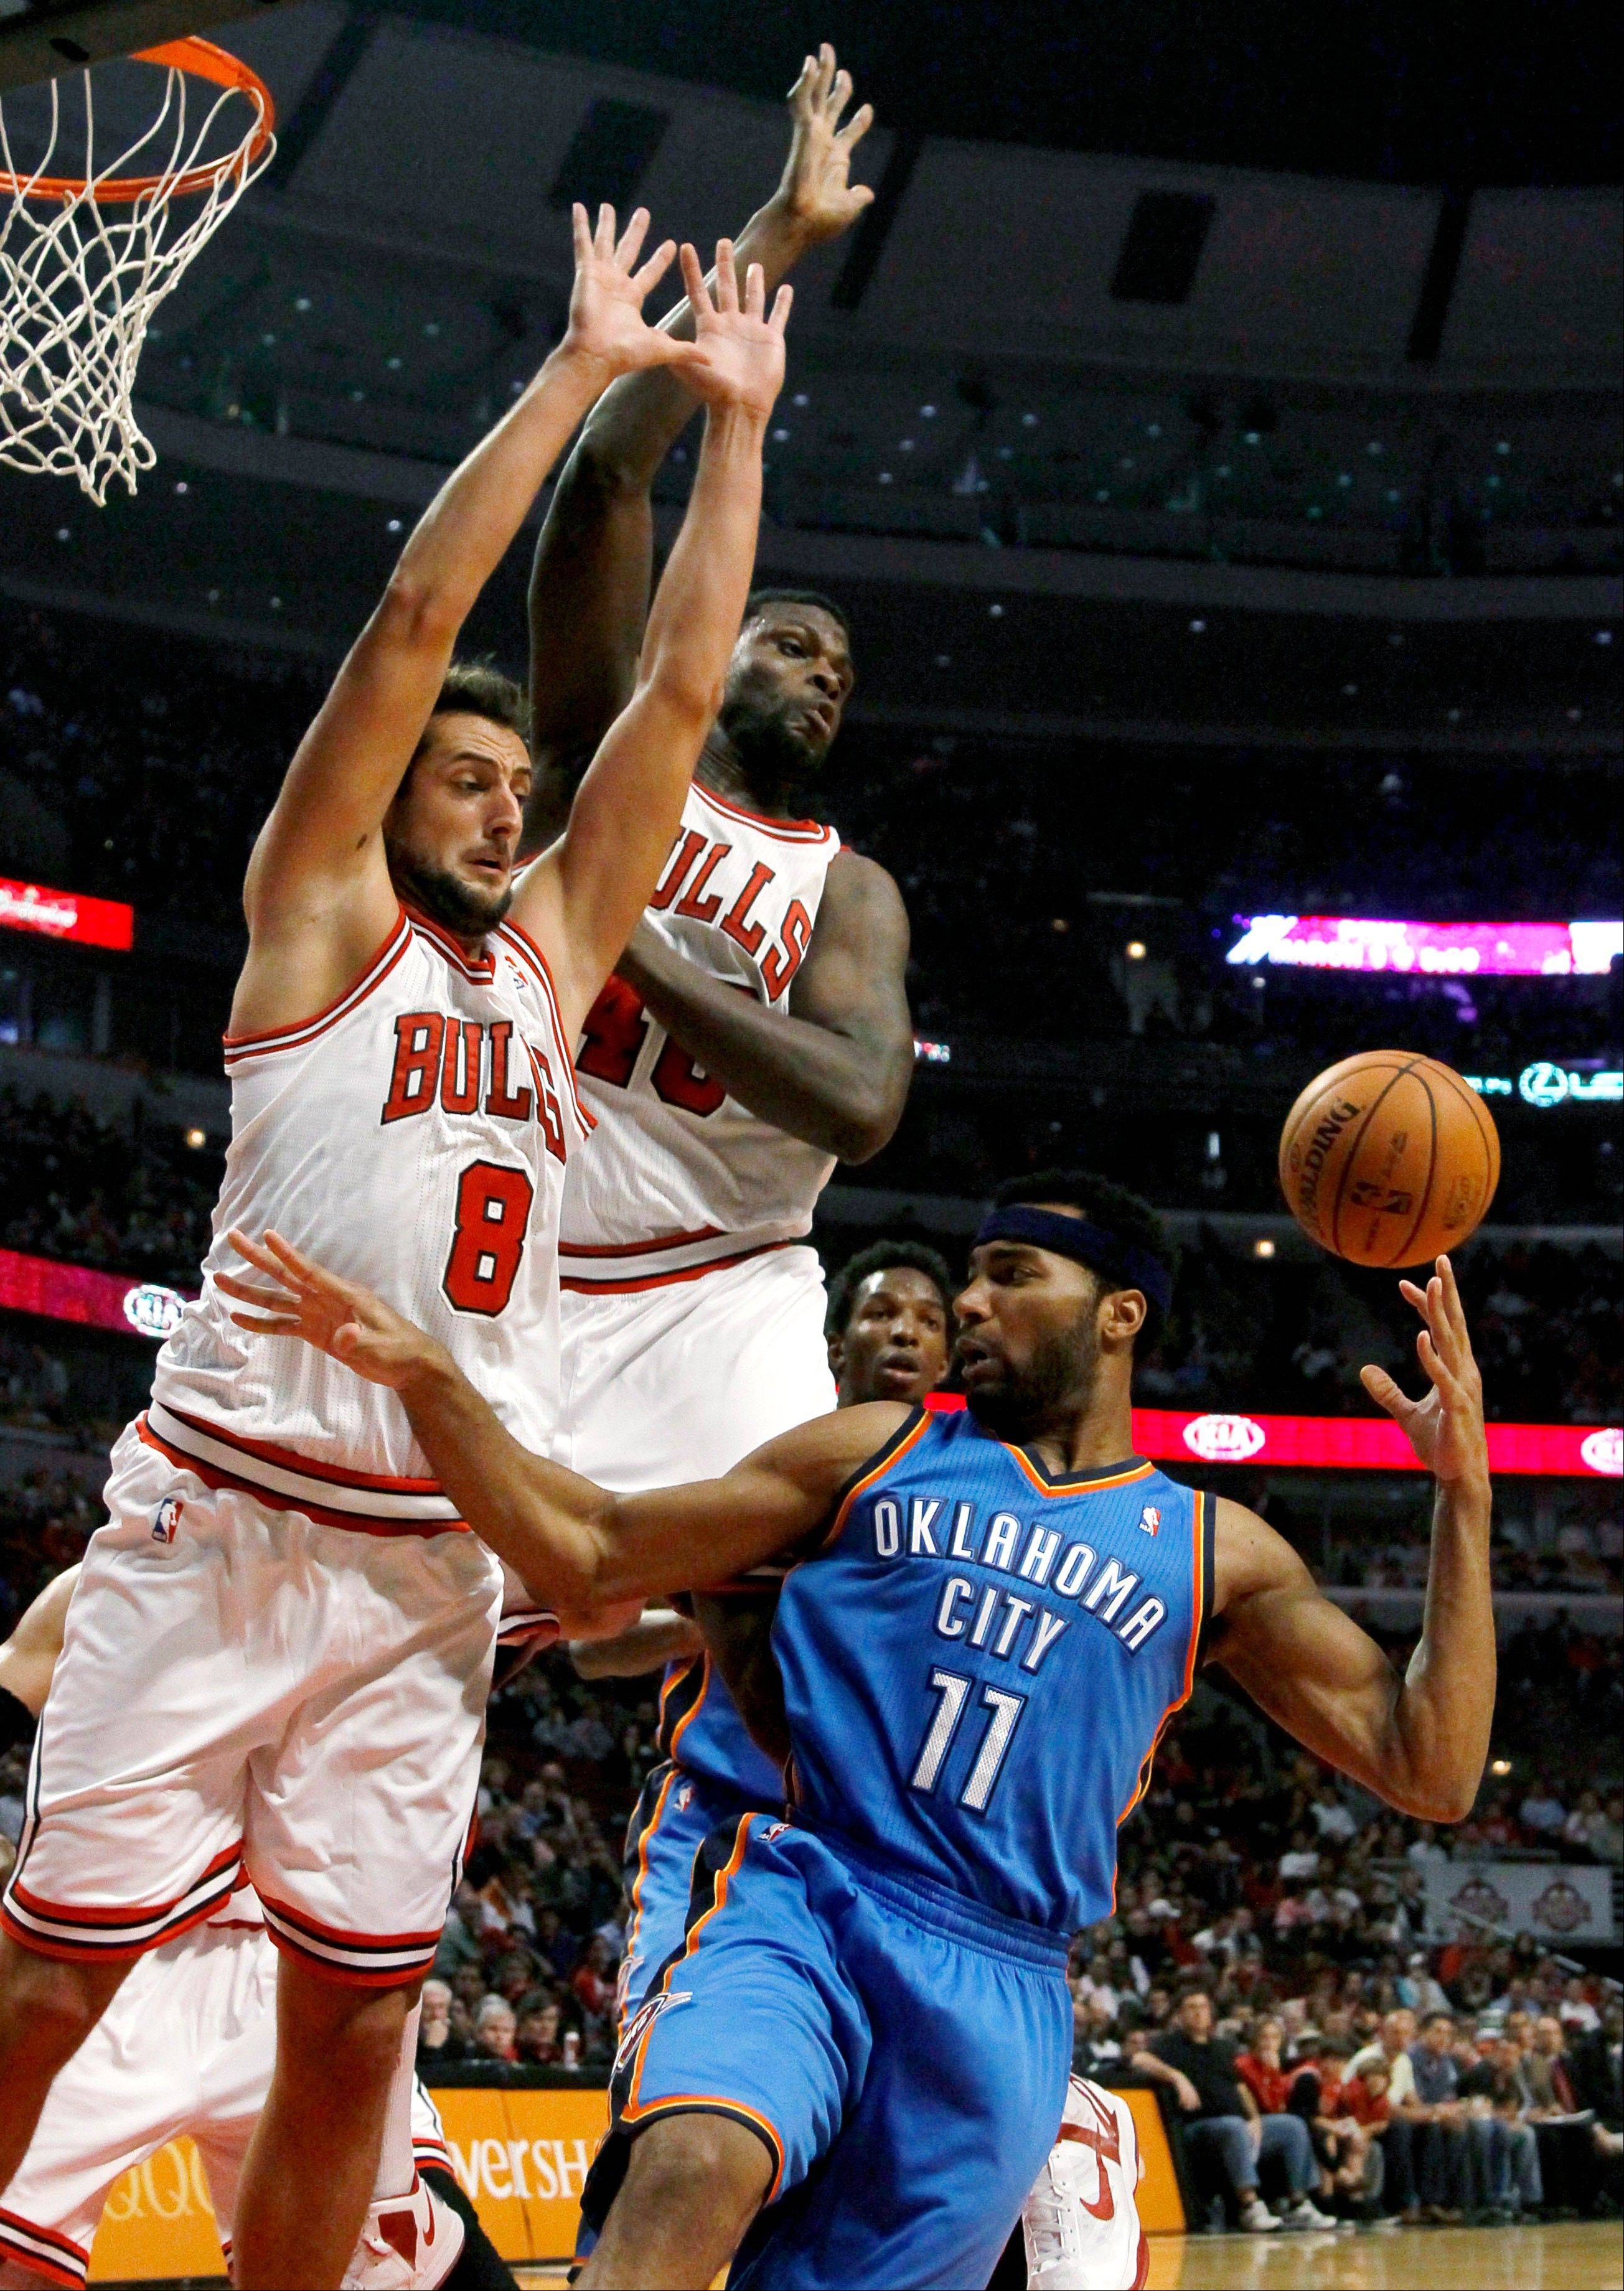 Oklahoma City Thunder small forward Lazar Hayward (11) passes behind his head as Chicago Bulls shooting guard Marco Belinelli (8) and center Nazr Mohammed defend during the first half of an NBA preseason basketball game, Tuesday, Oct. 23, 2012, in Chicago.